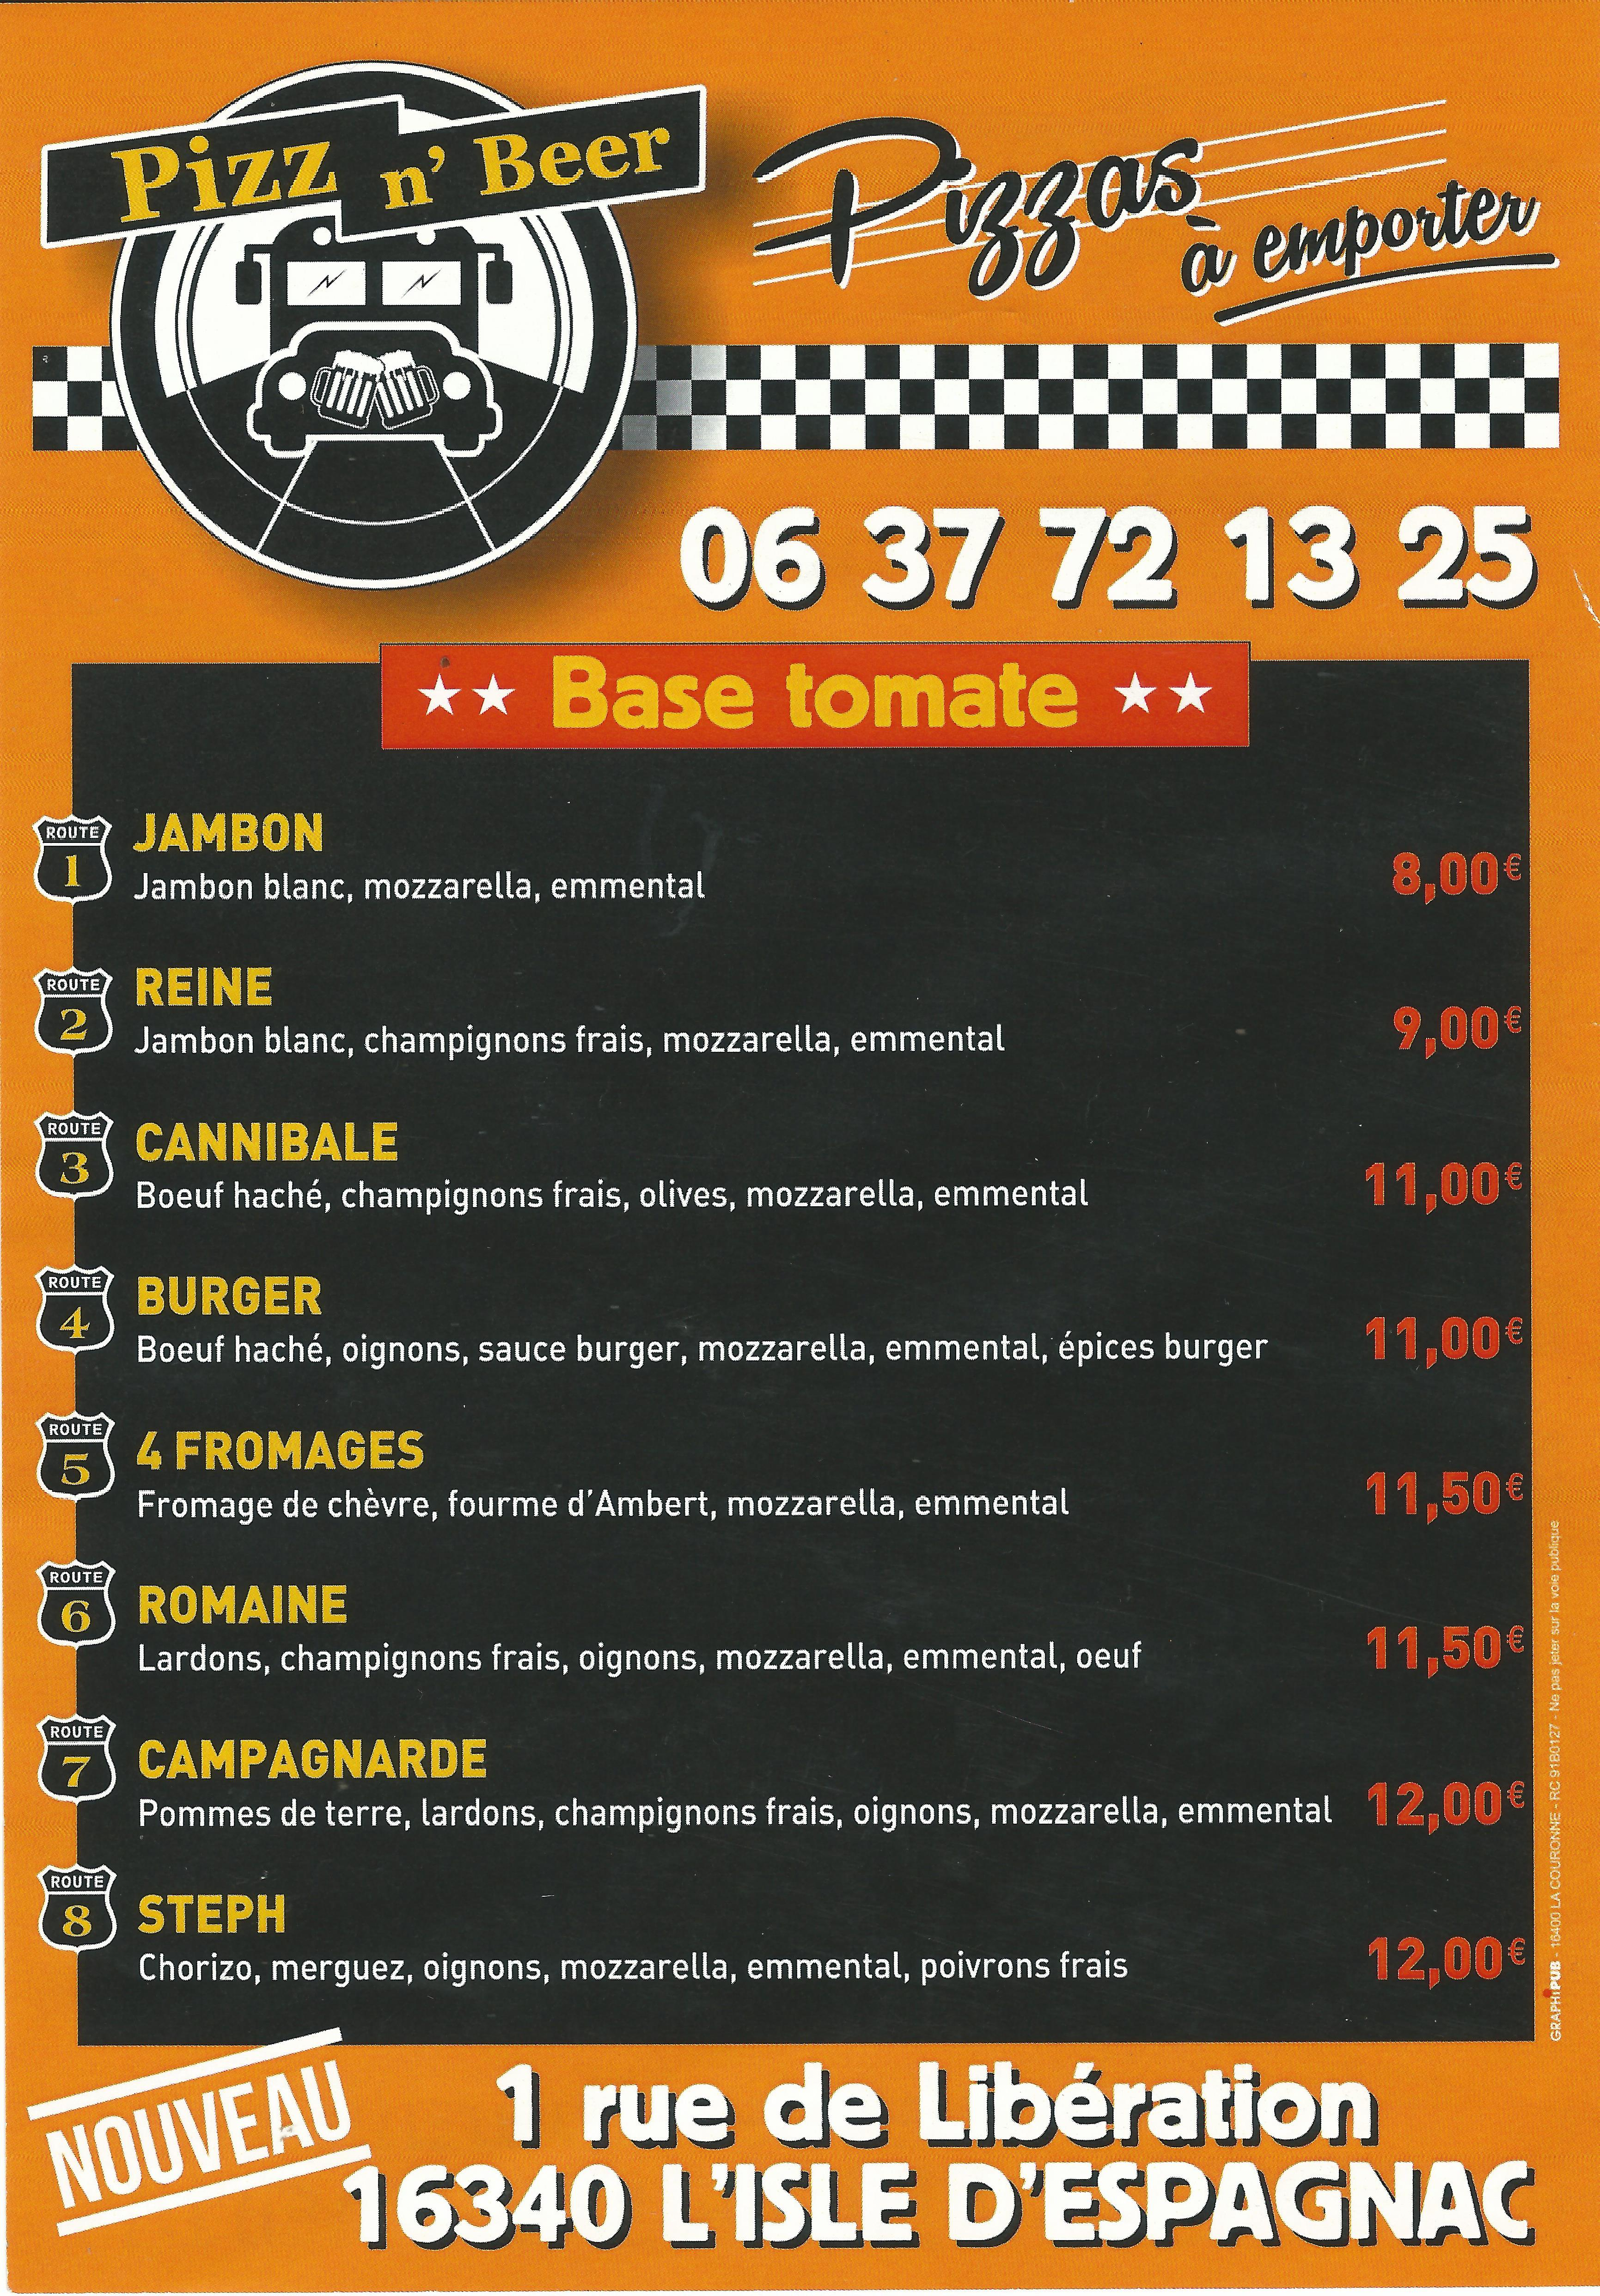 Pizz n' Beer - Cliquer ici